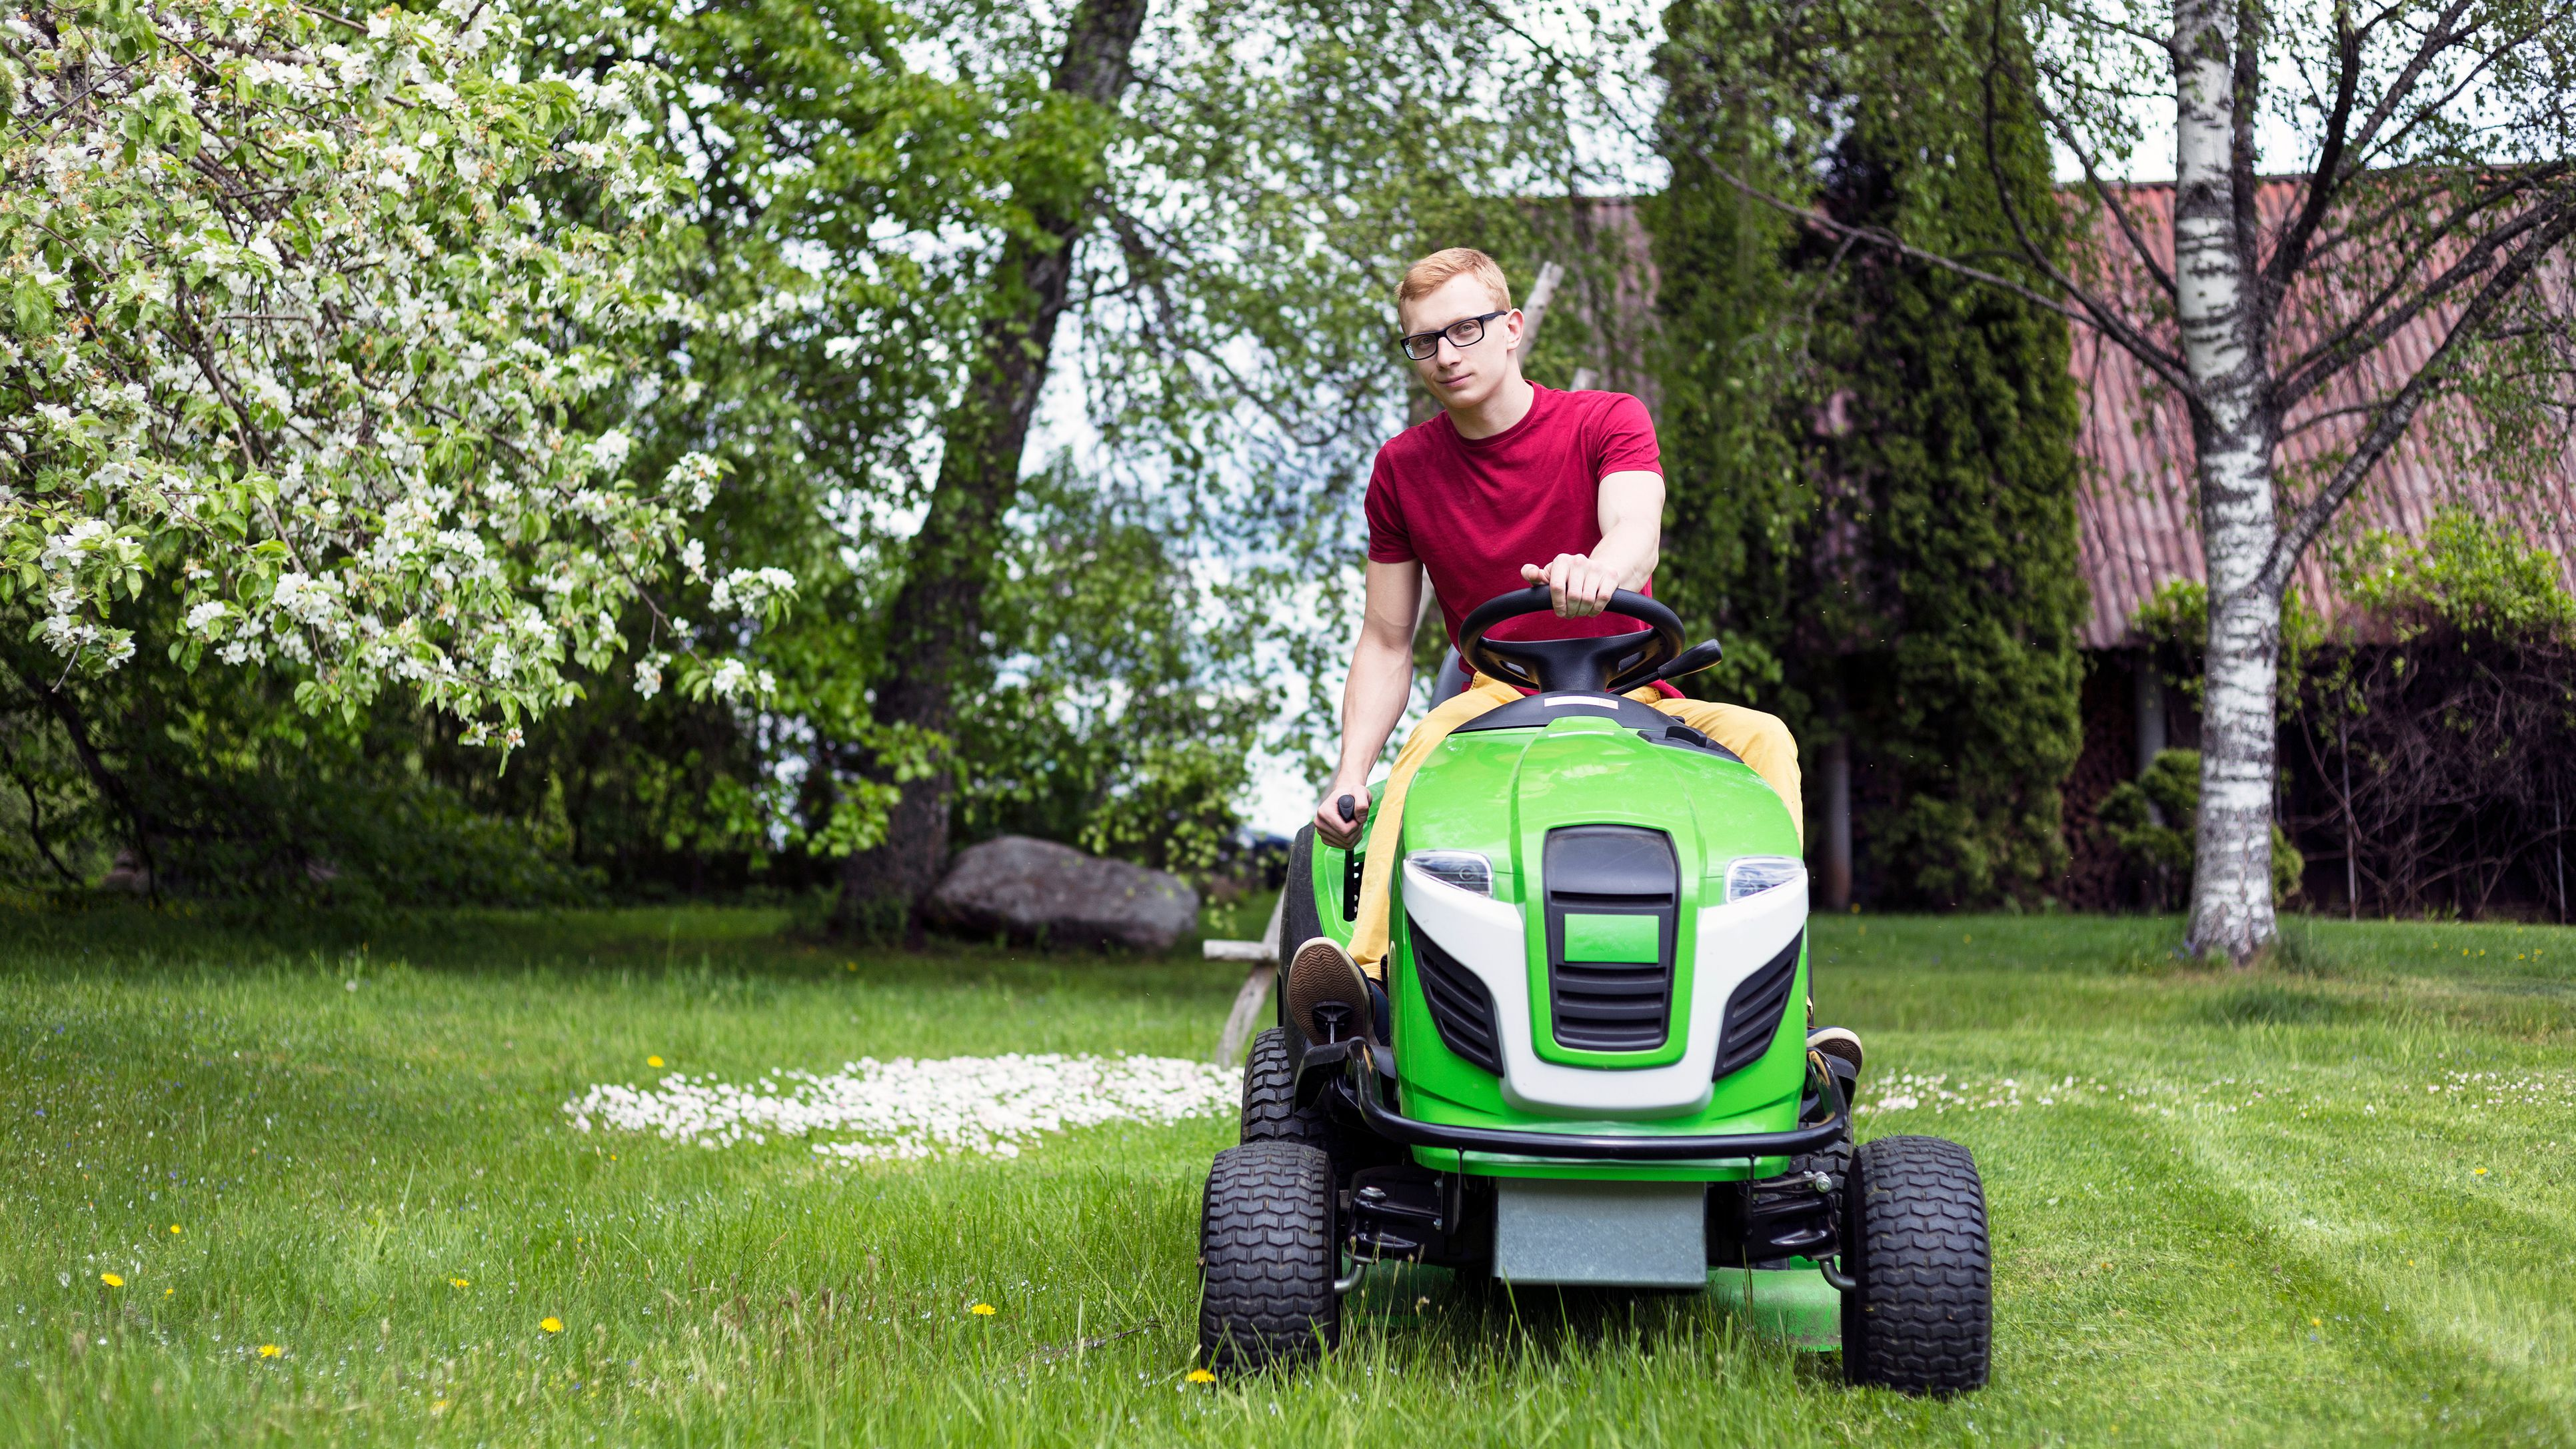 The 8 Best Riding Lawn Mowers of 2019